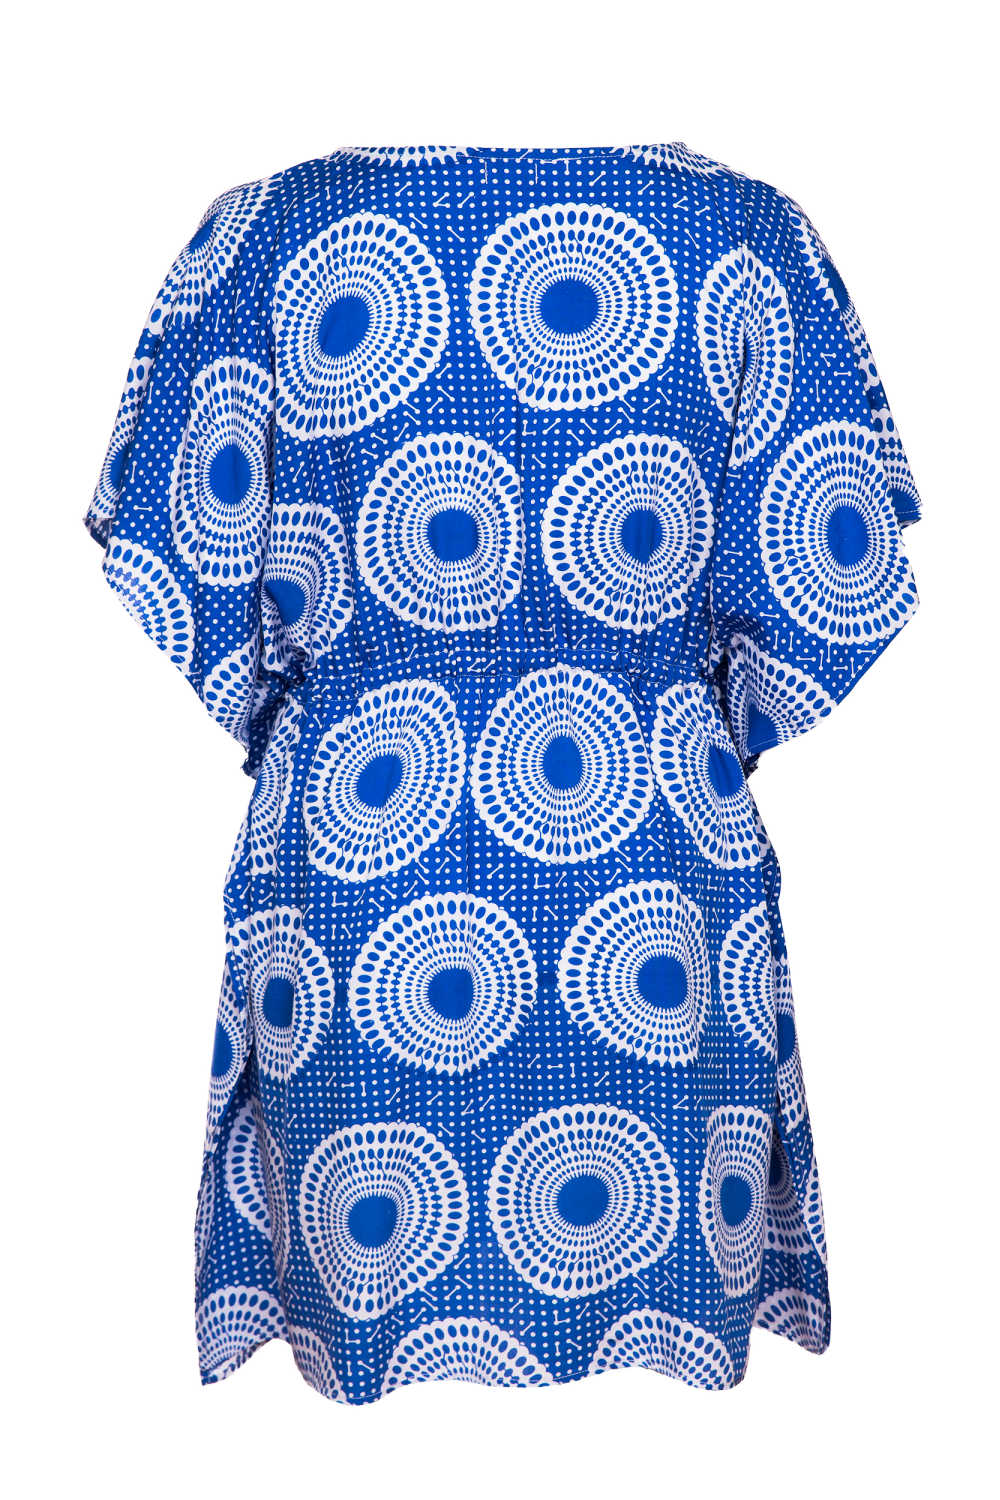 ladies-beach-kaftan-dress-blue-white-polka-dot